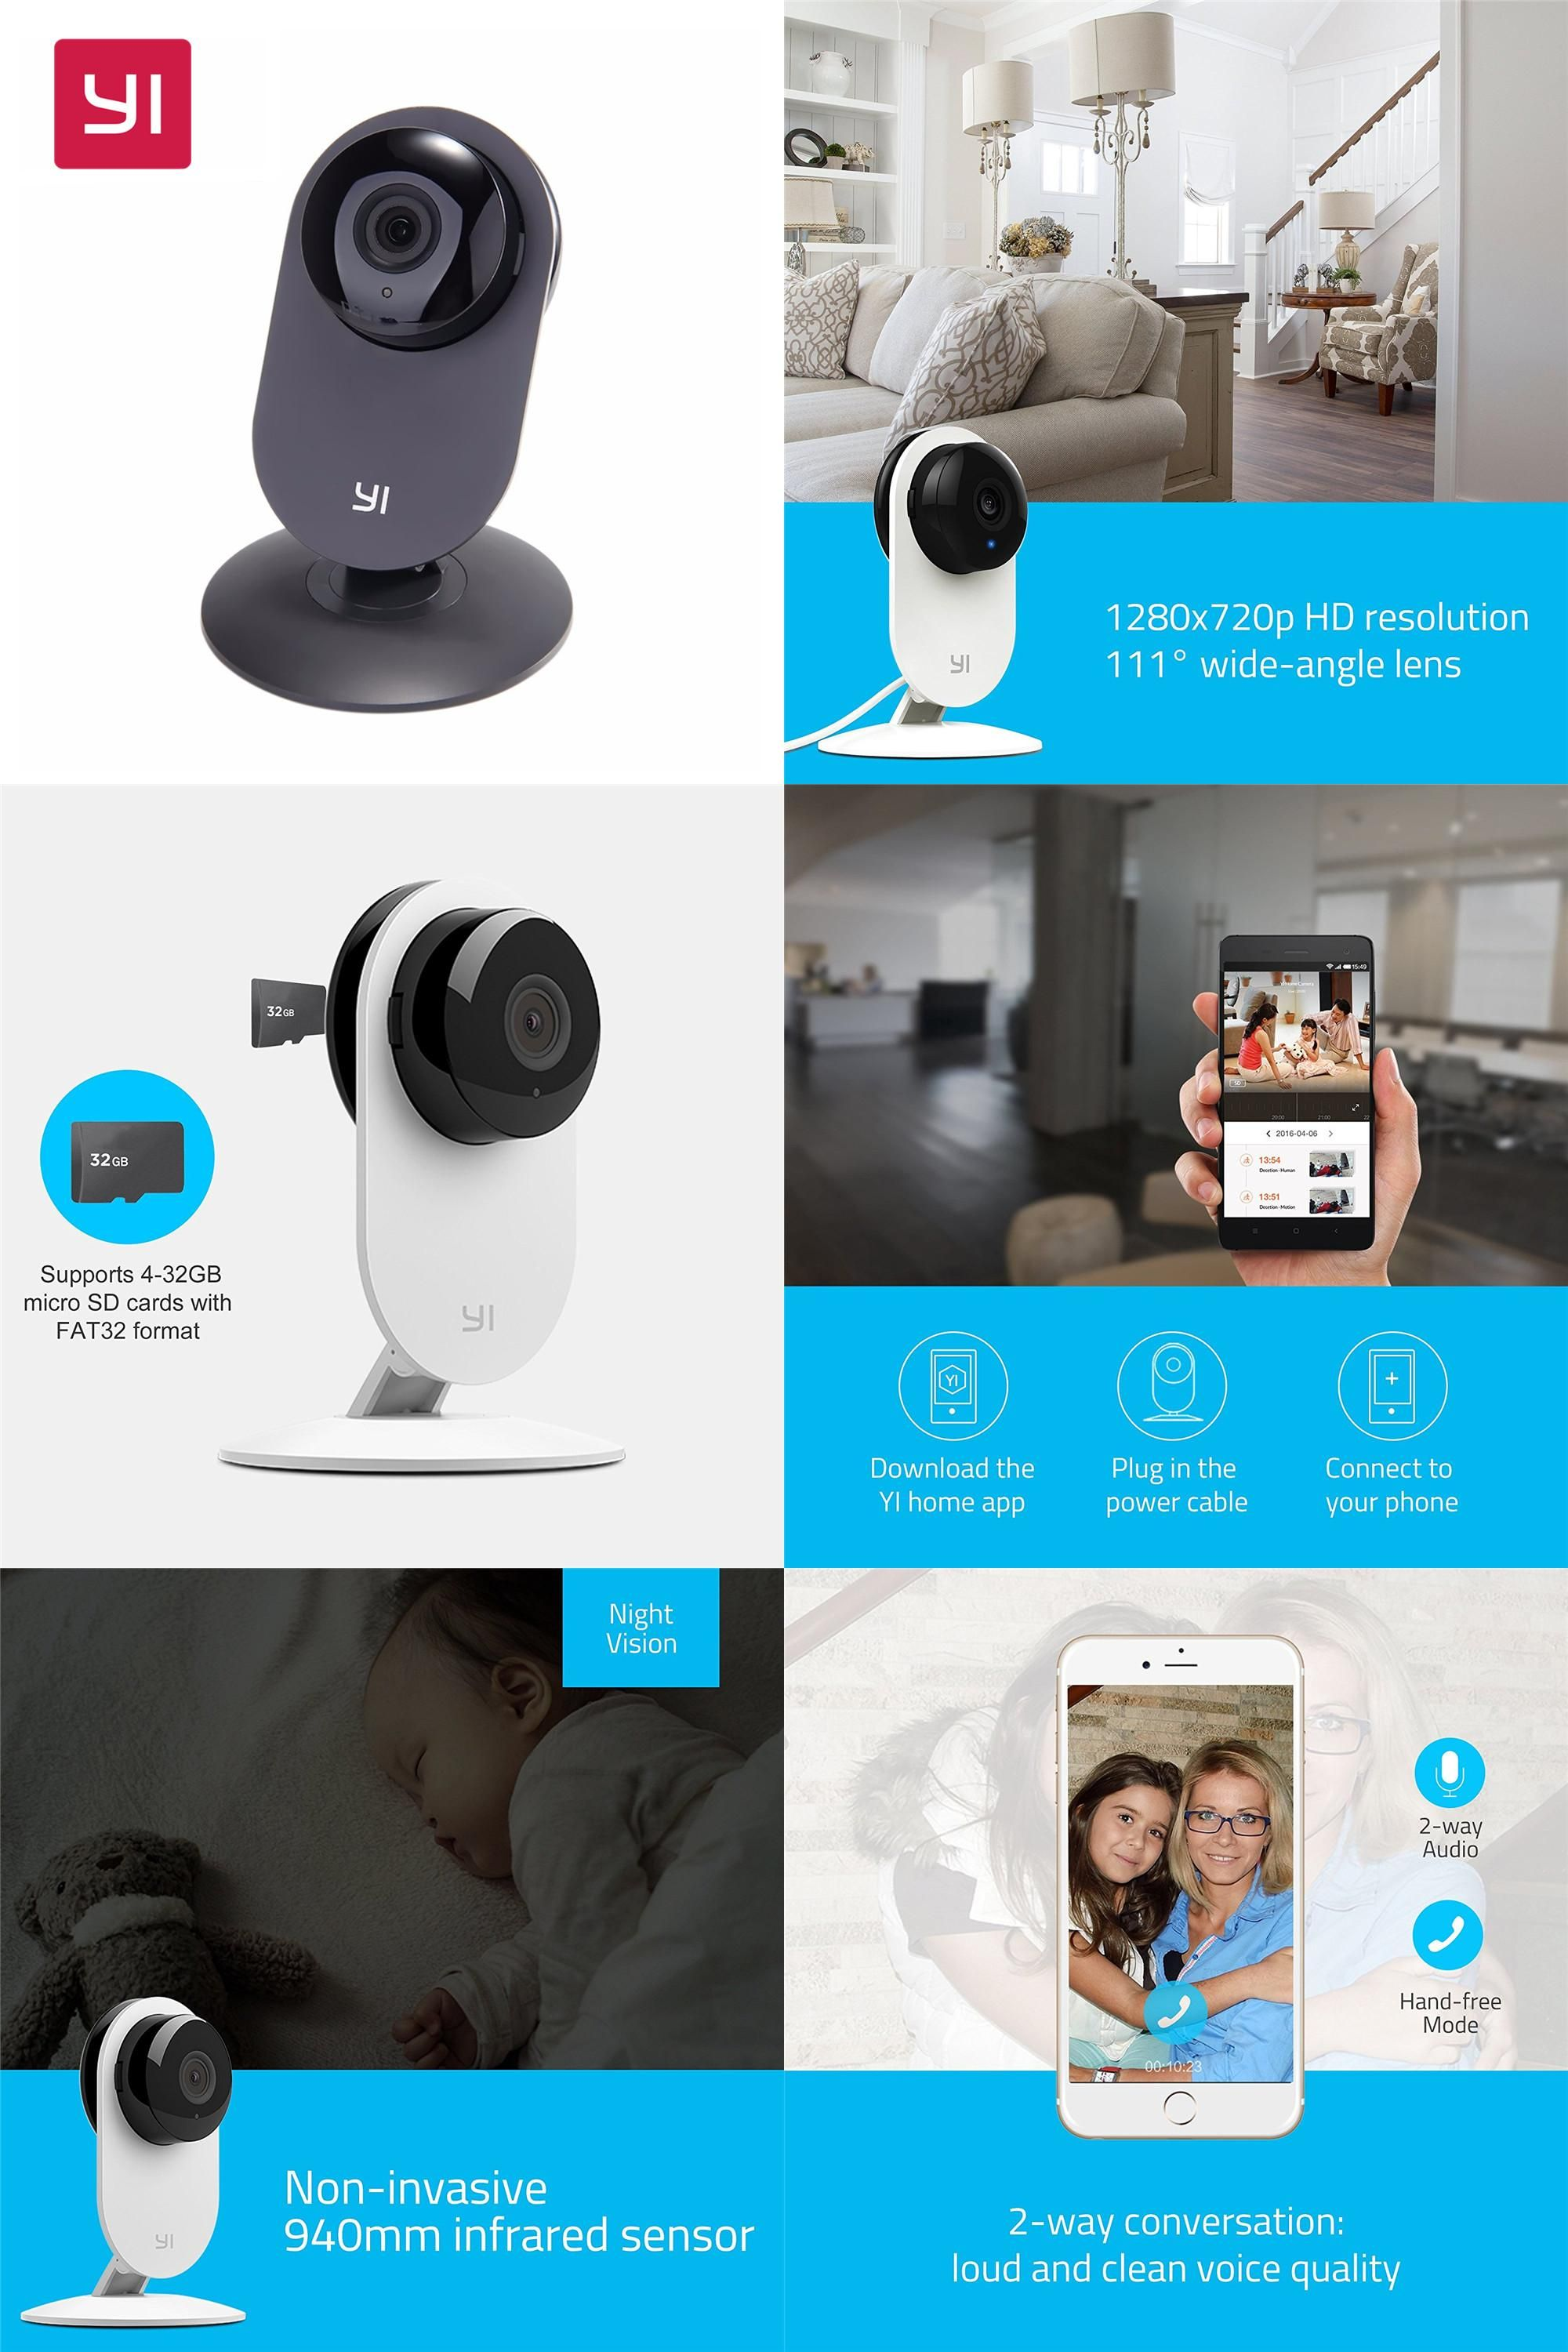 Visit to Buy] YI Home Camera 720P Night Vision Video Monitor IP ...